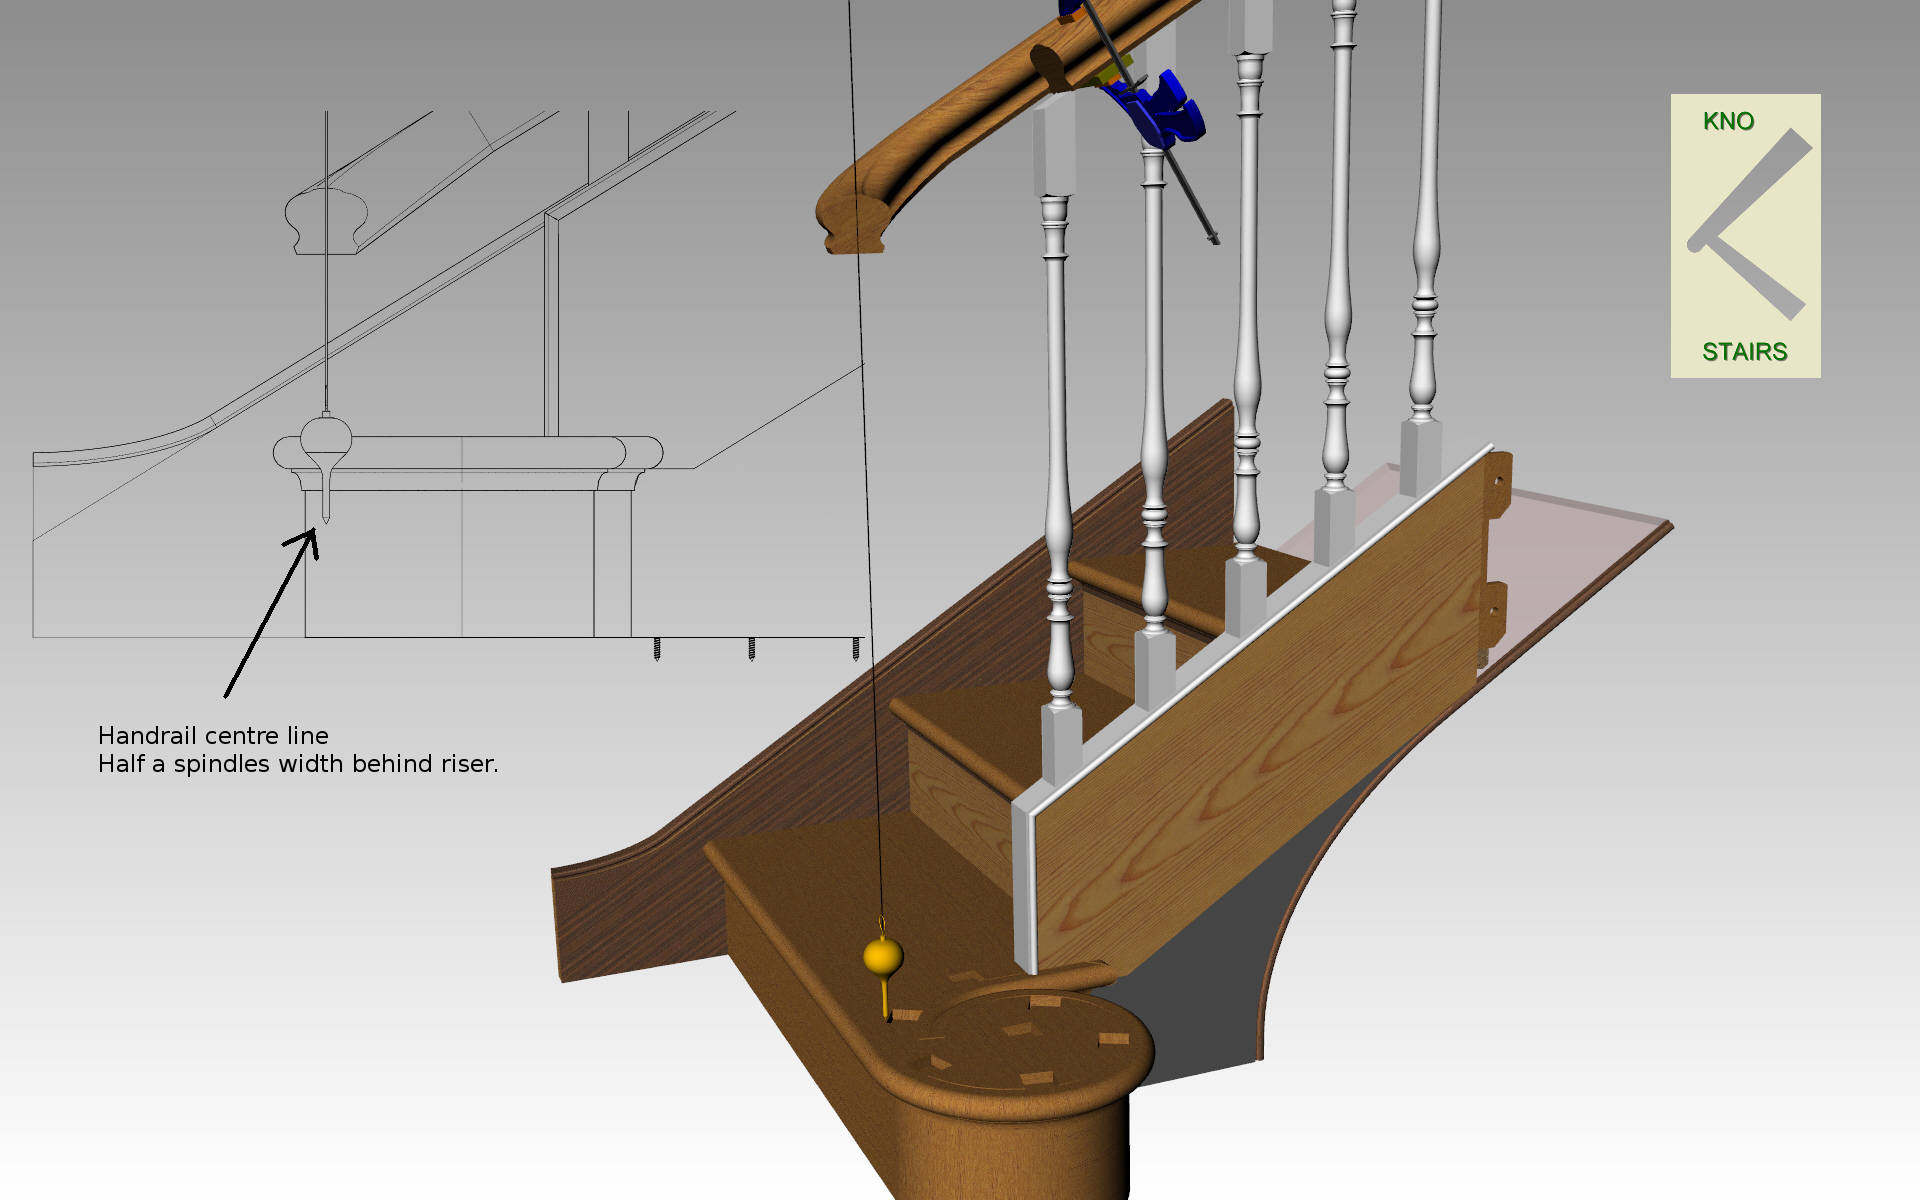 Plumb the handrail position.